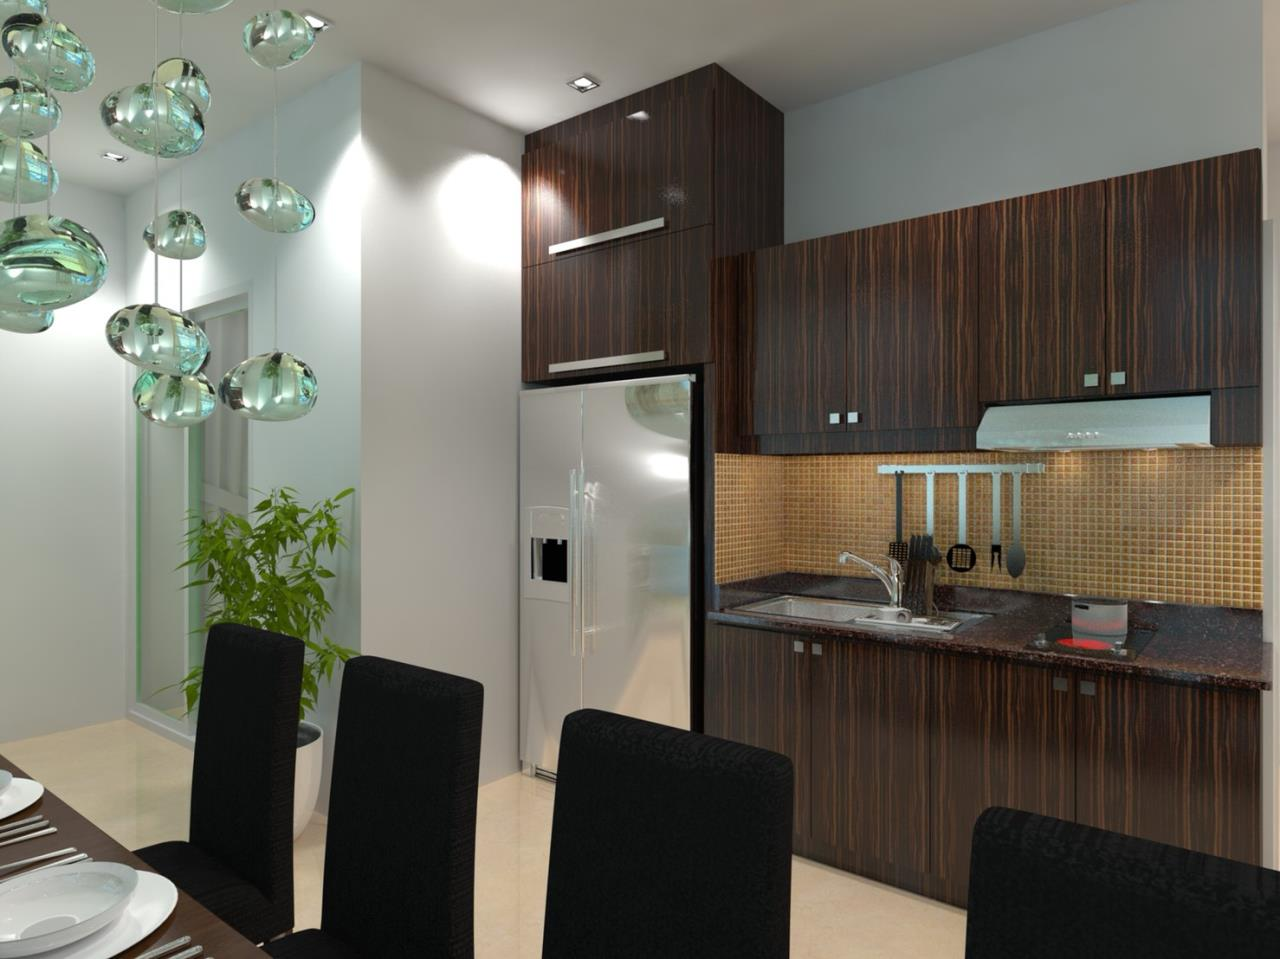 Signature Realty ( Thailand ) Co Ltd Agency's Furnished 2bedroom 65.75 sq.m condo with jacuzzi floor 2-11 at The Grand Jomtein Beach Pattaya 33